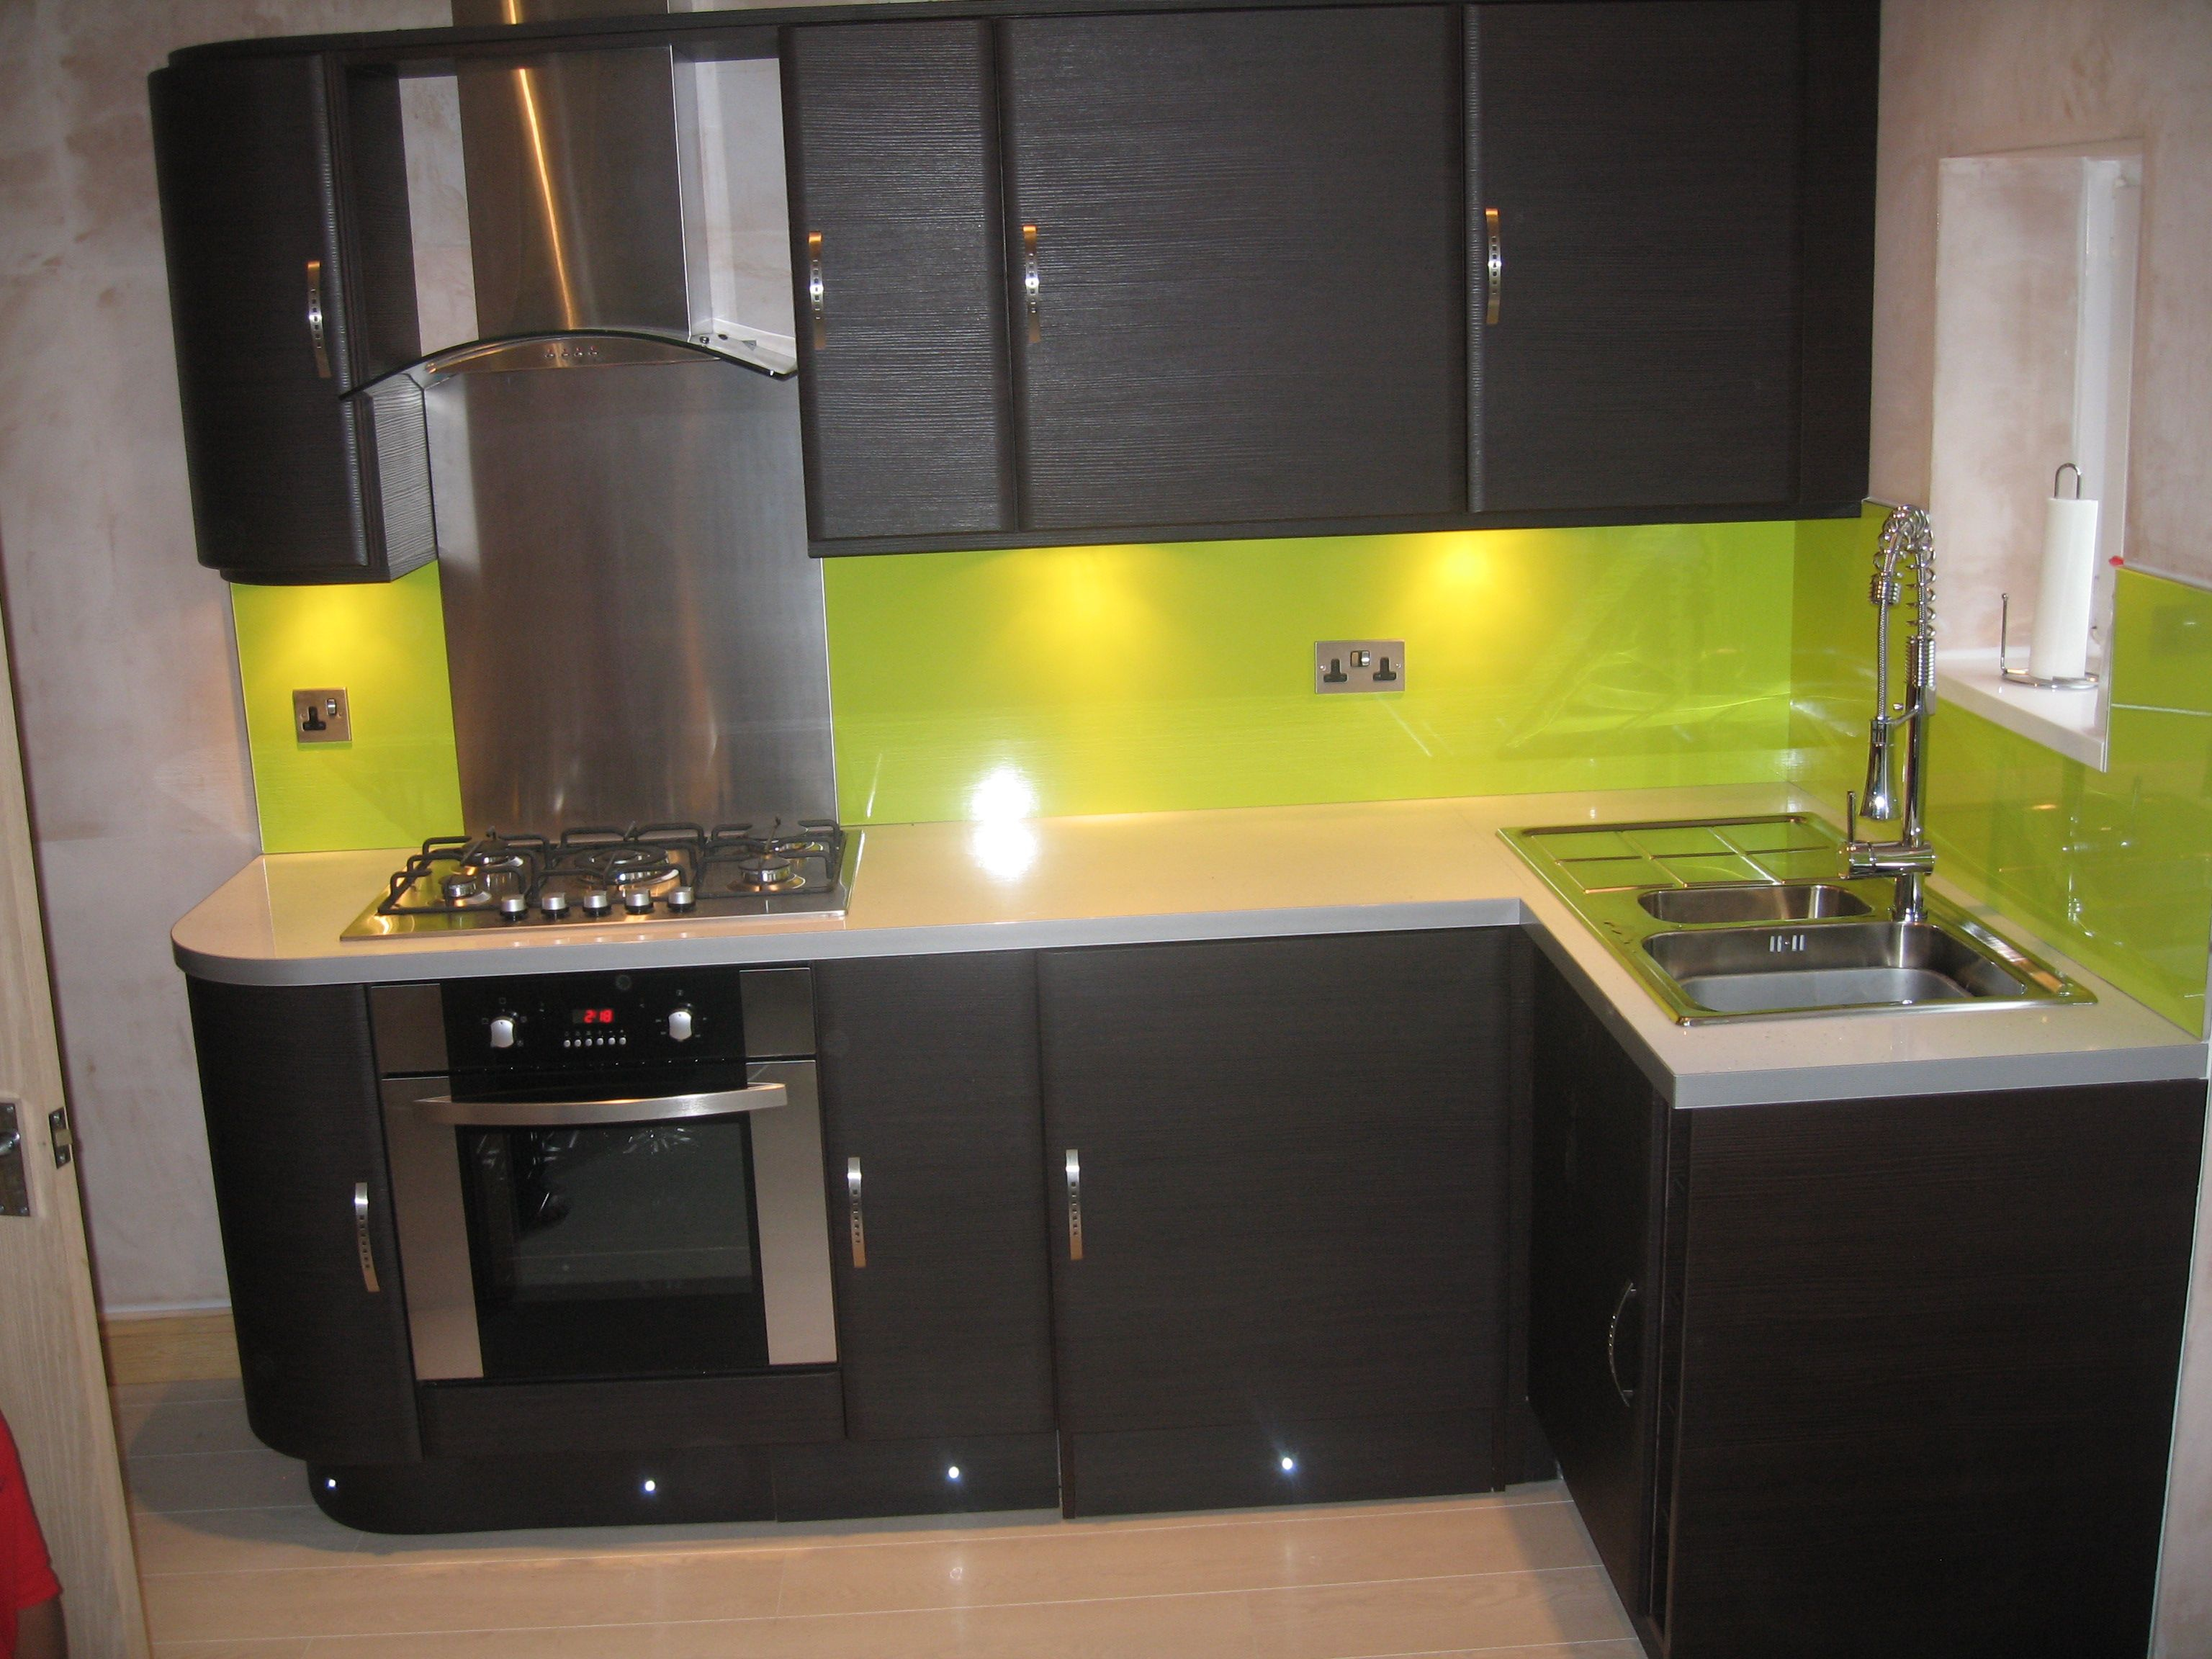 Lime Green Ceramic Tiles Backsplash Also Black Kitchen Cabinets